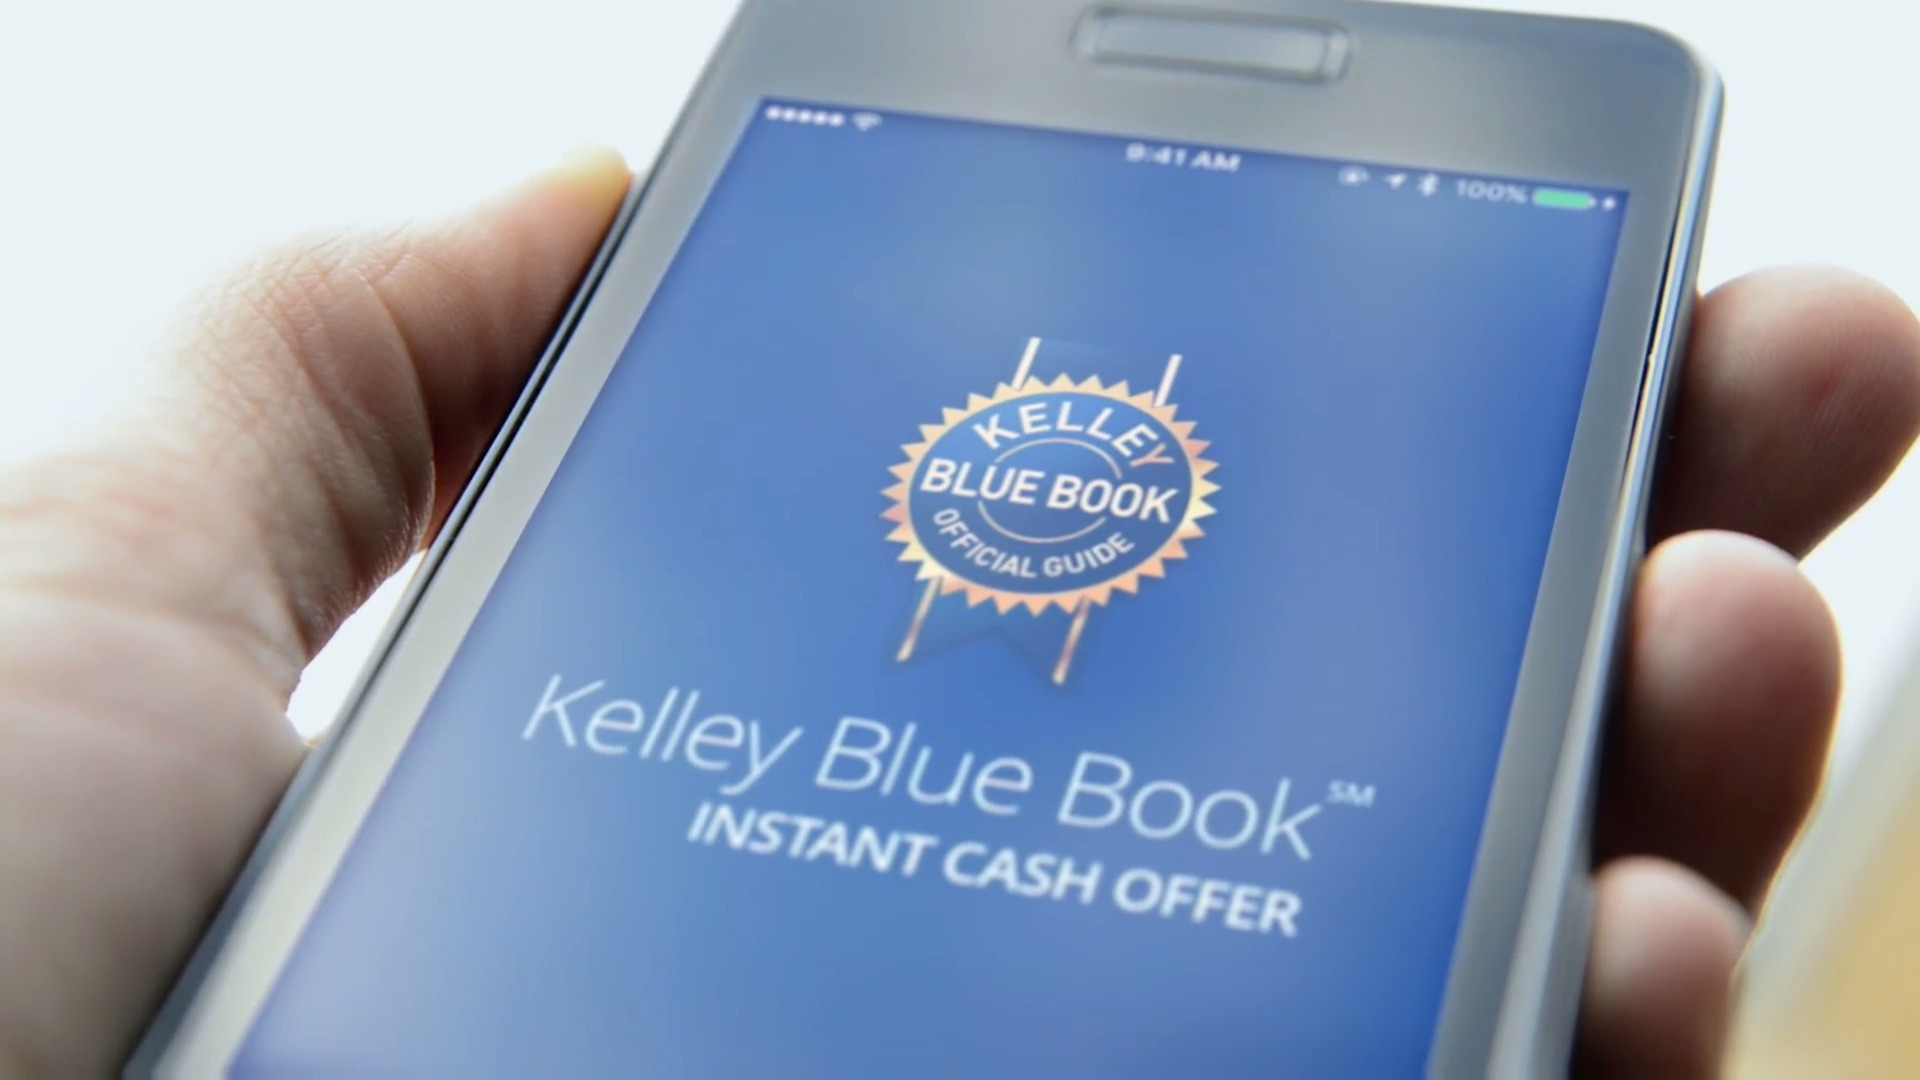 Kelley Blue Book Used Cars Value Trade New Dealer App Automotive Valuation and Marketing solutions From